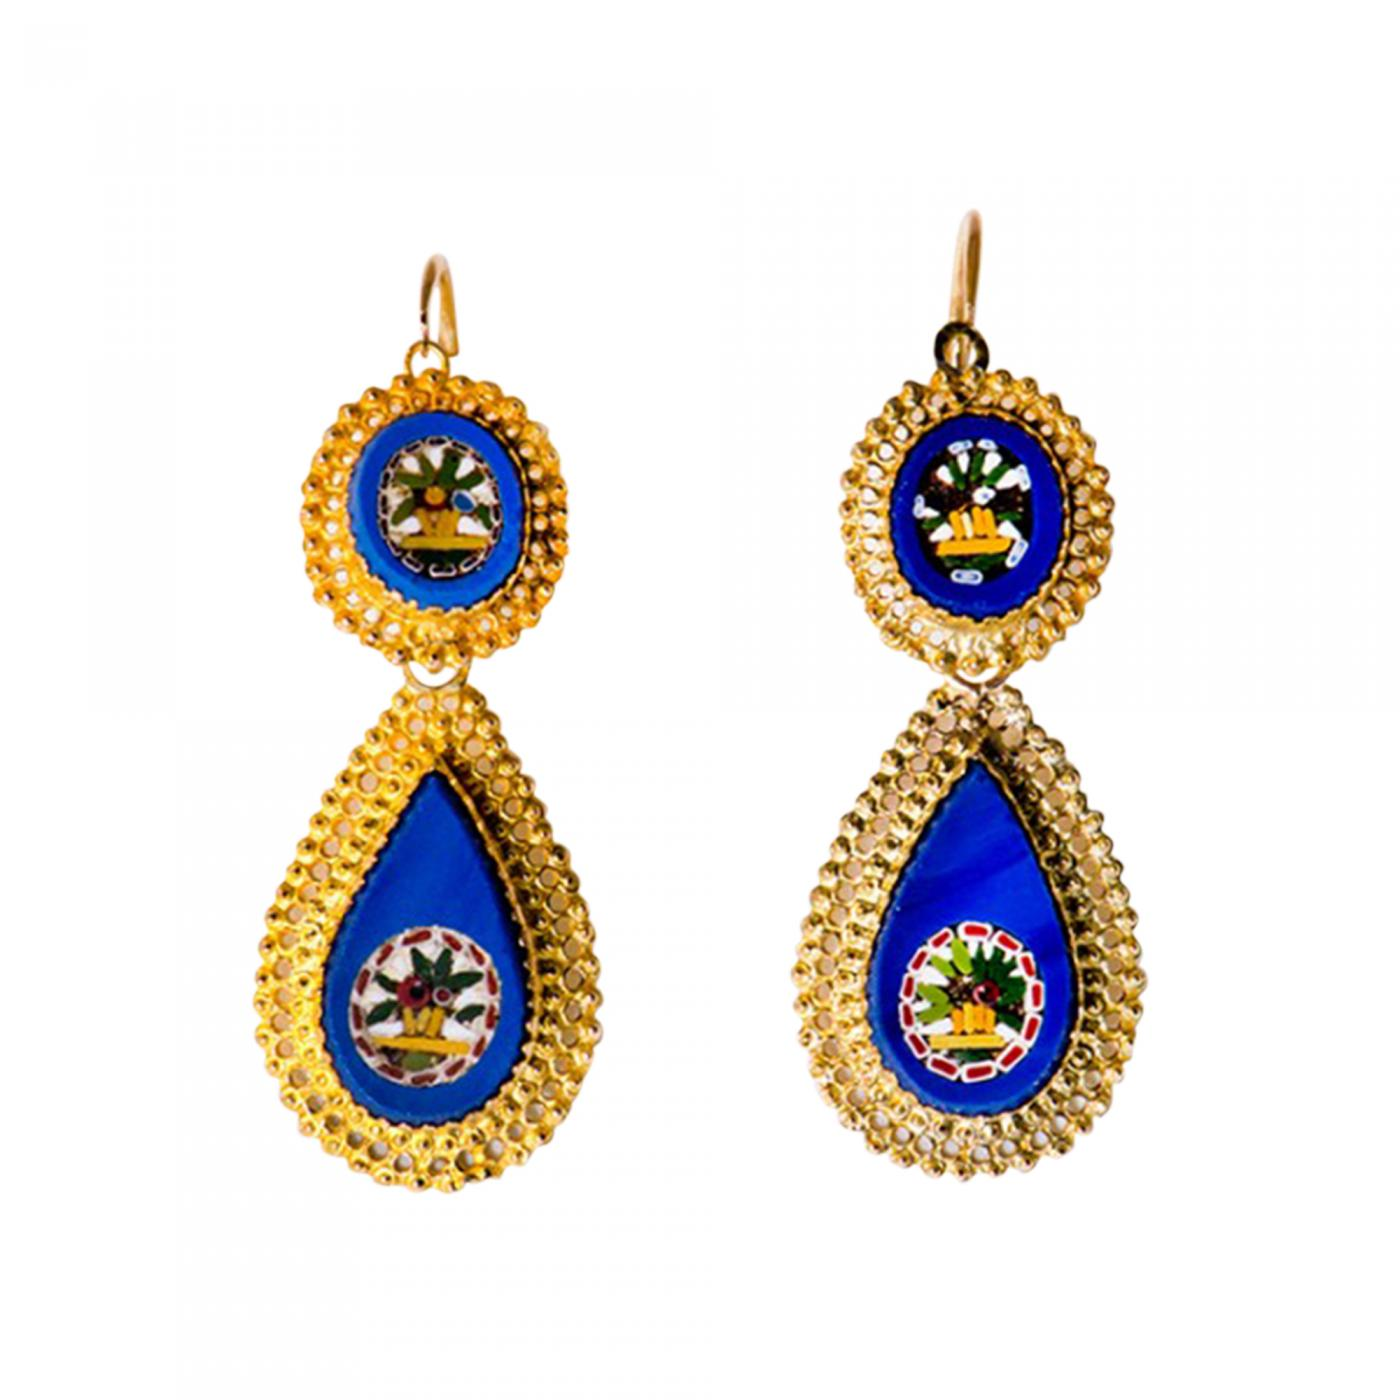 inch italian earrings fremada today product shipping gold watches jewelry infinity free yellow overstock